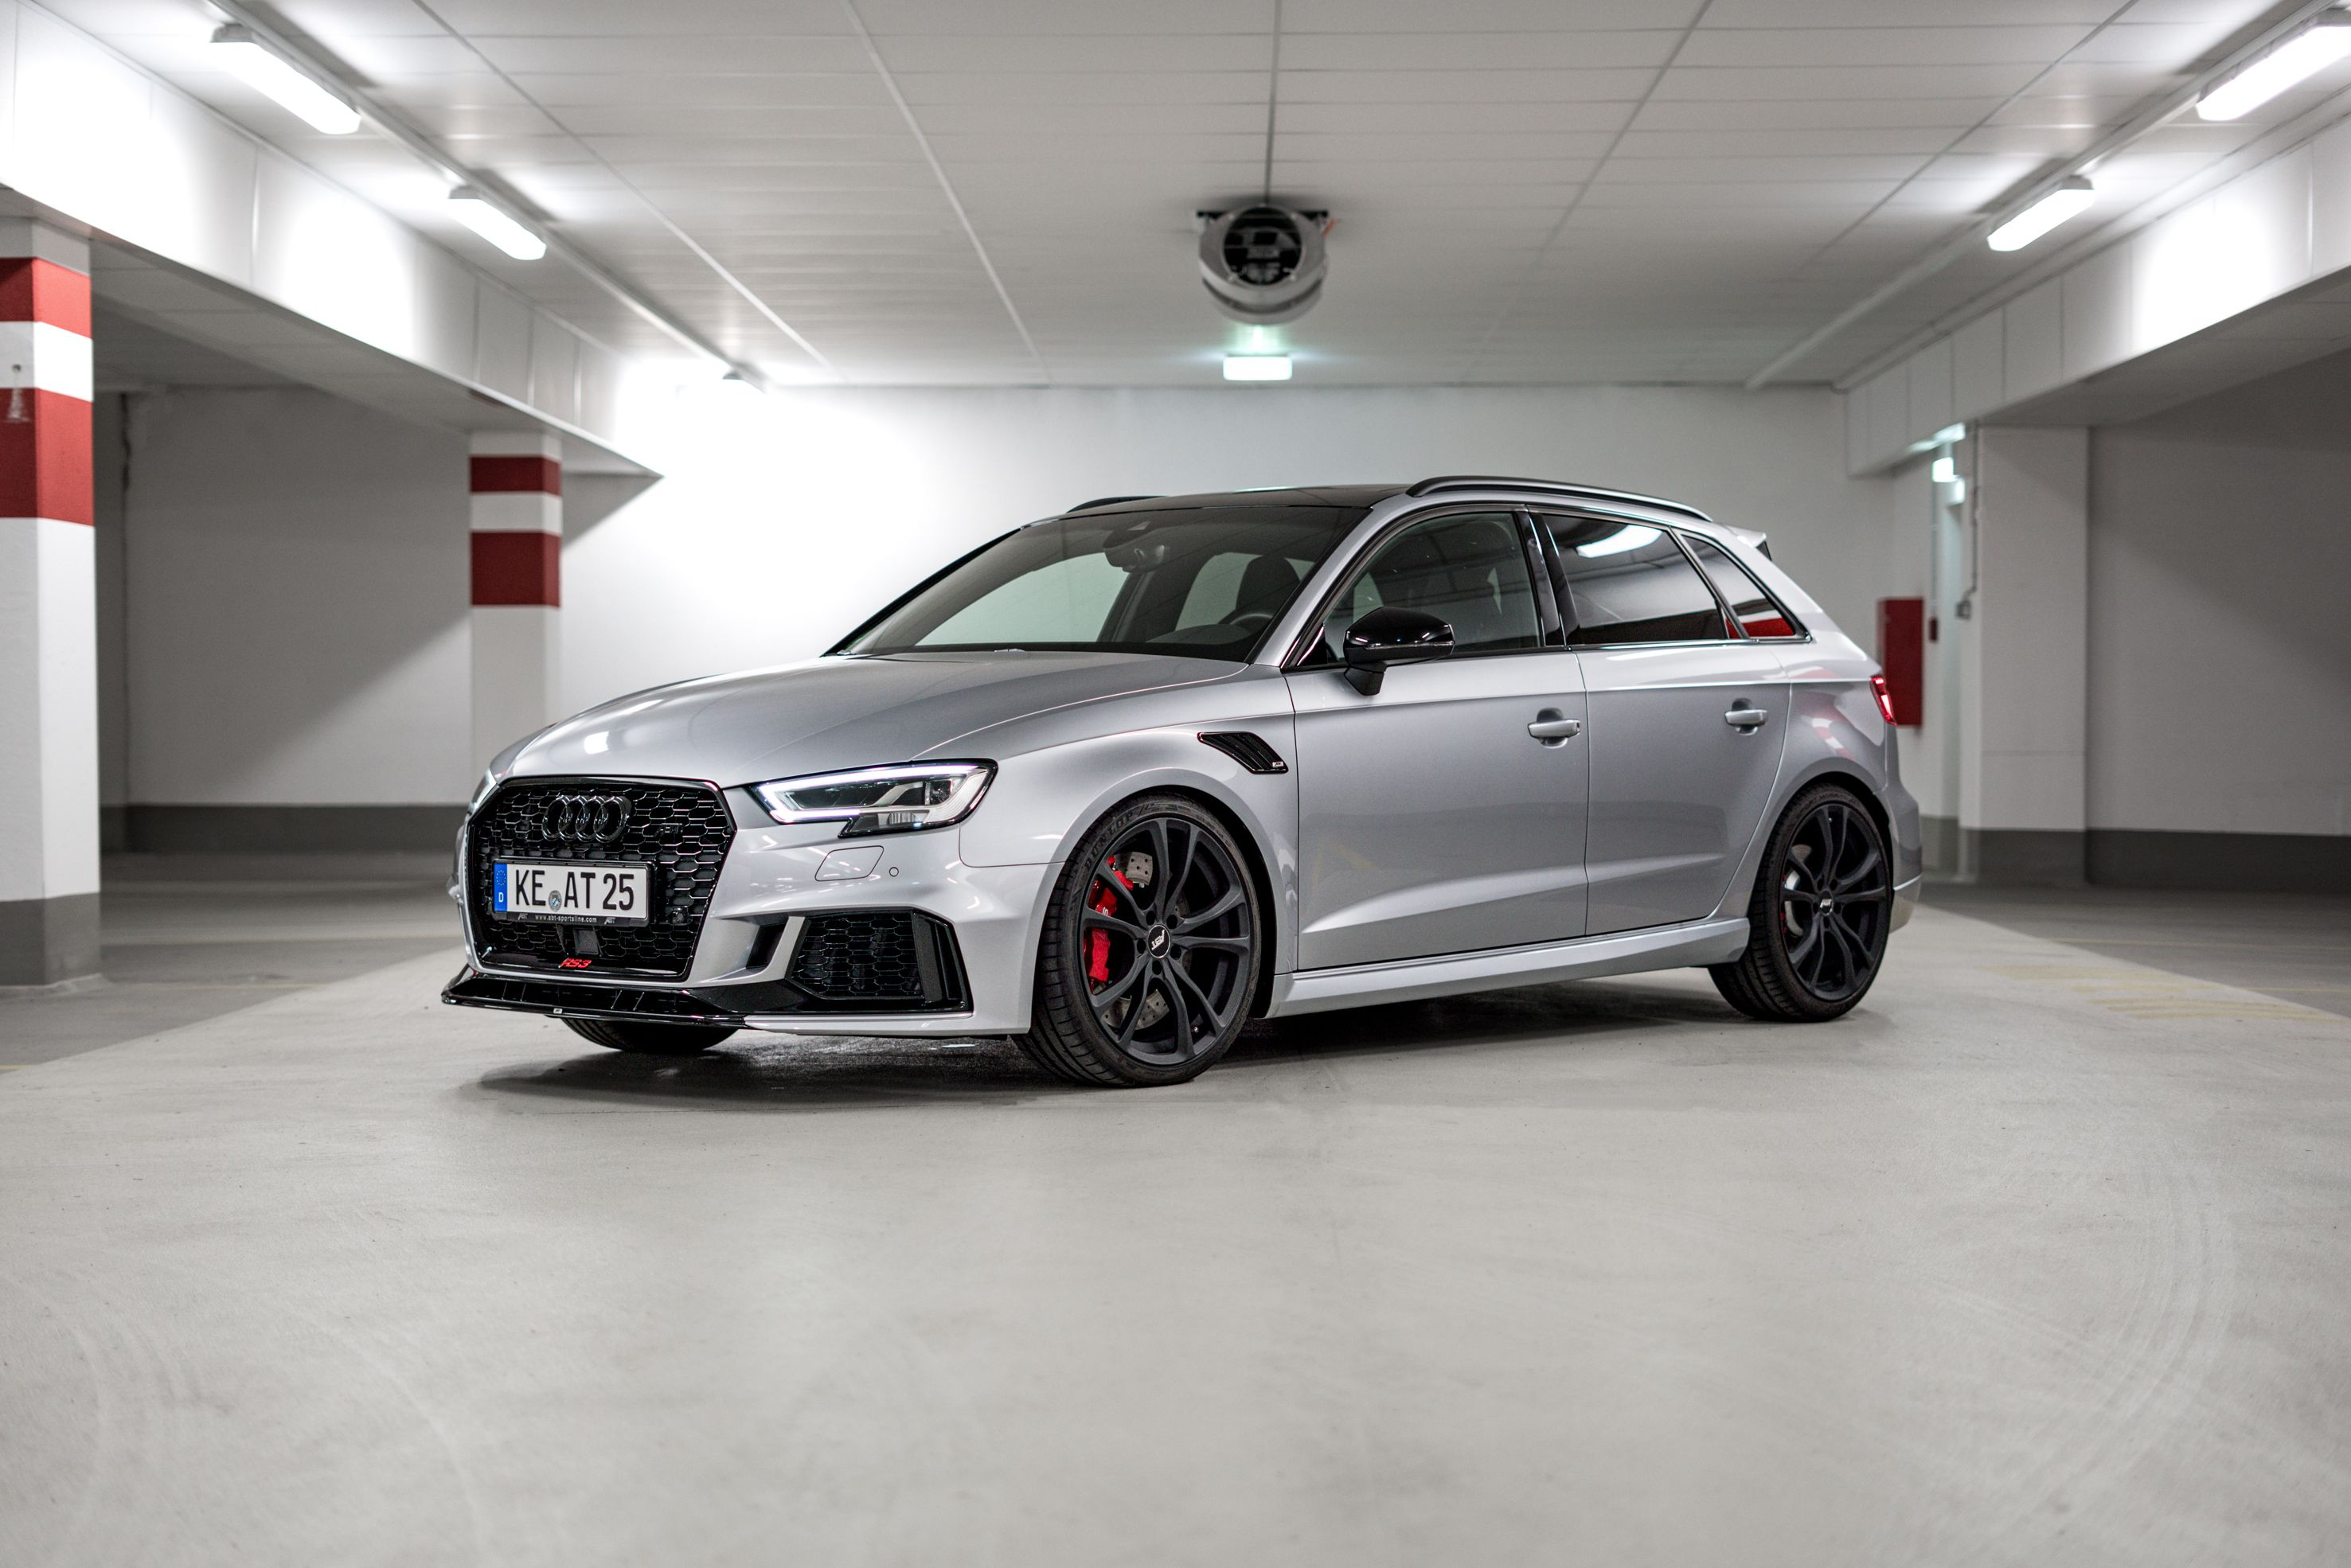 2019 Audi Rs3 Hatchback By Abt Sportsline Top Speed Audi Rs3 Audi Rs Audi